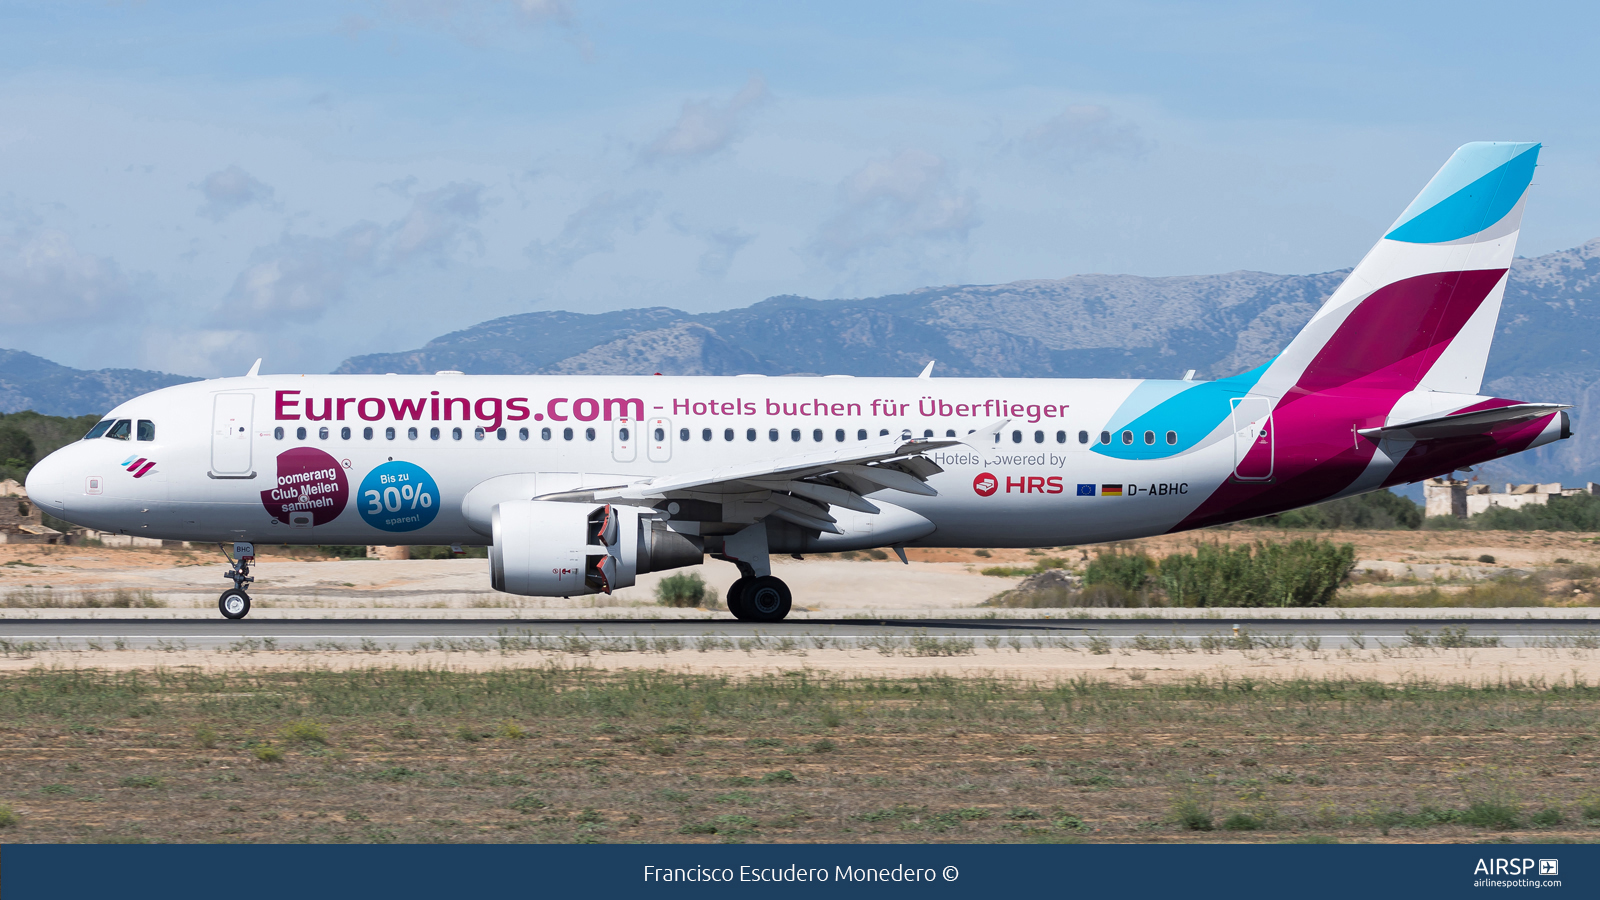 Eurowings  Airbus A320  D-ABHC